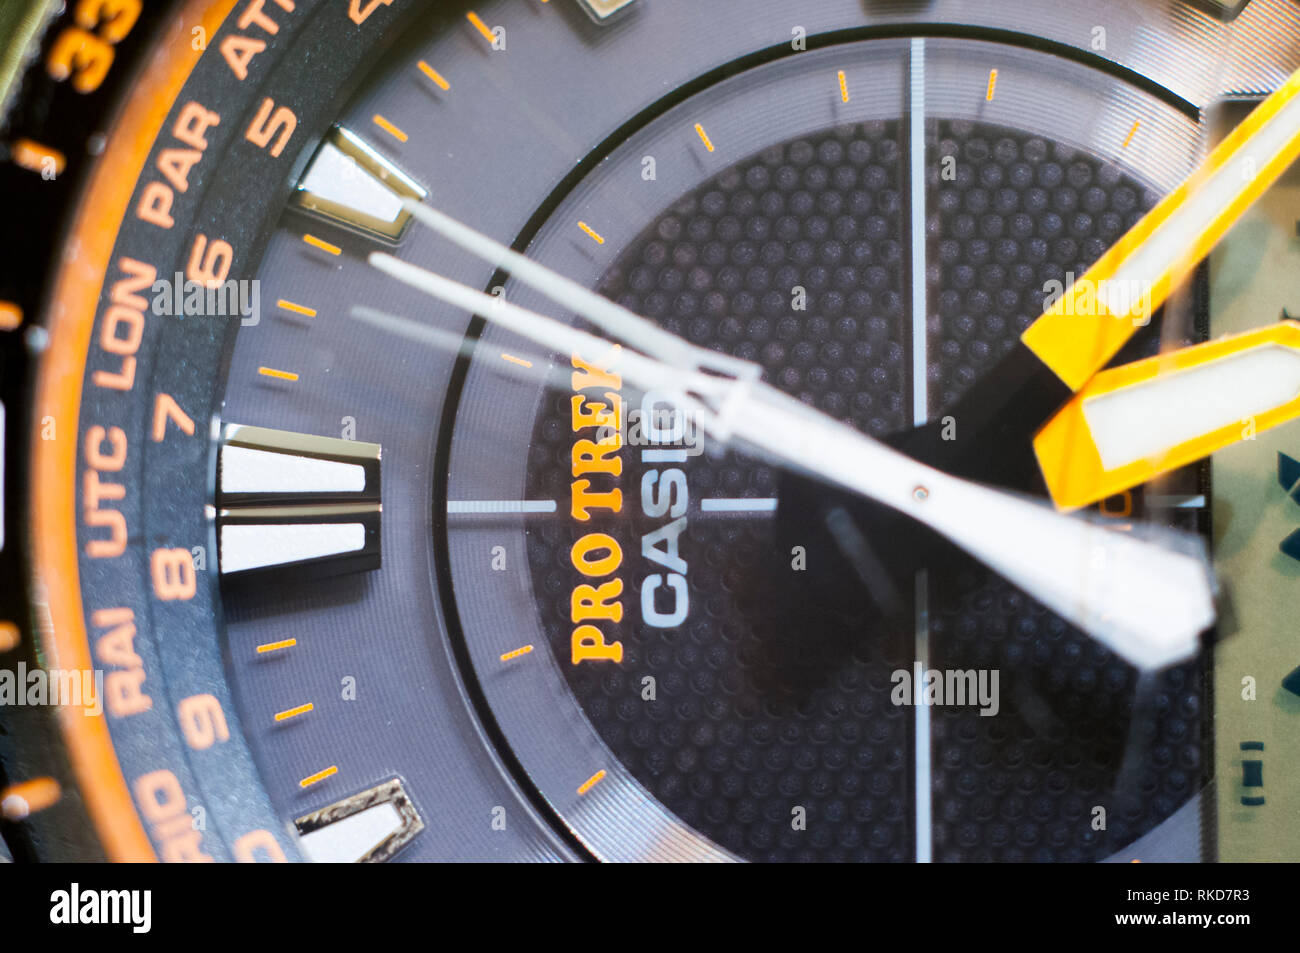 Casio ProTrek PRG 510GB watch with a triple sensor watch series of watches from the electronics manufacturer company Casio. - Stock Image